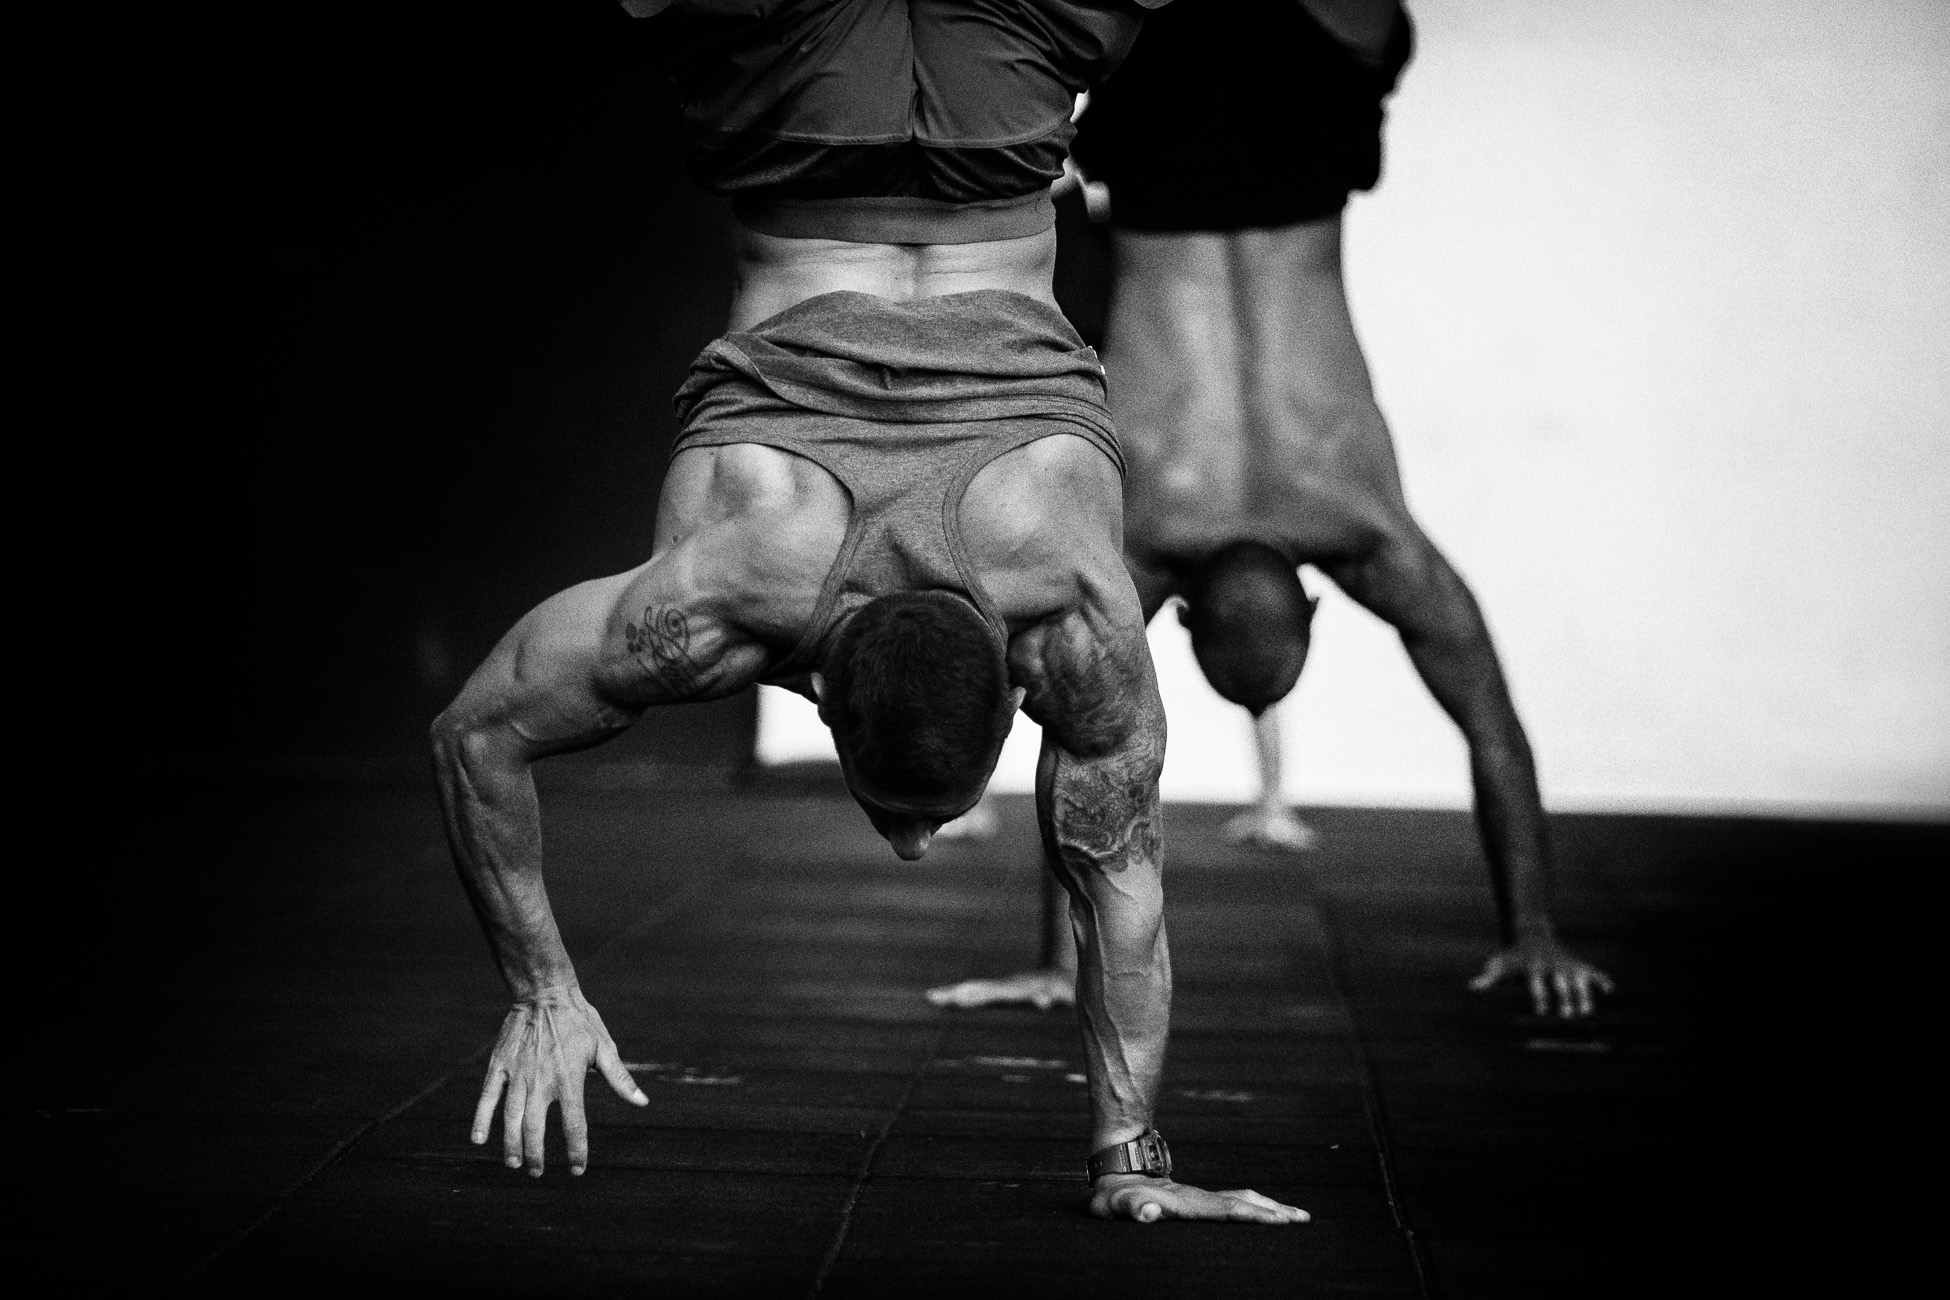 Gonçalo Barriga CrossFit Photographer - Handstand walk